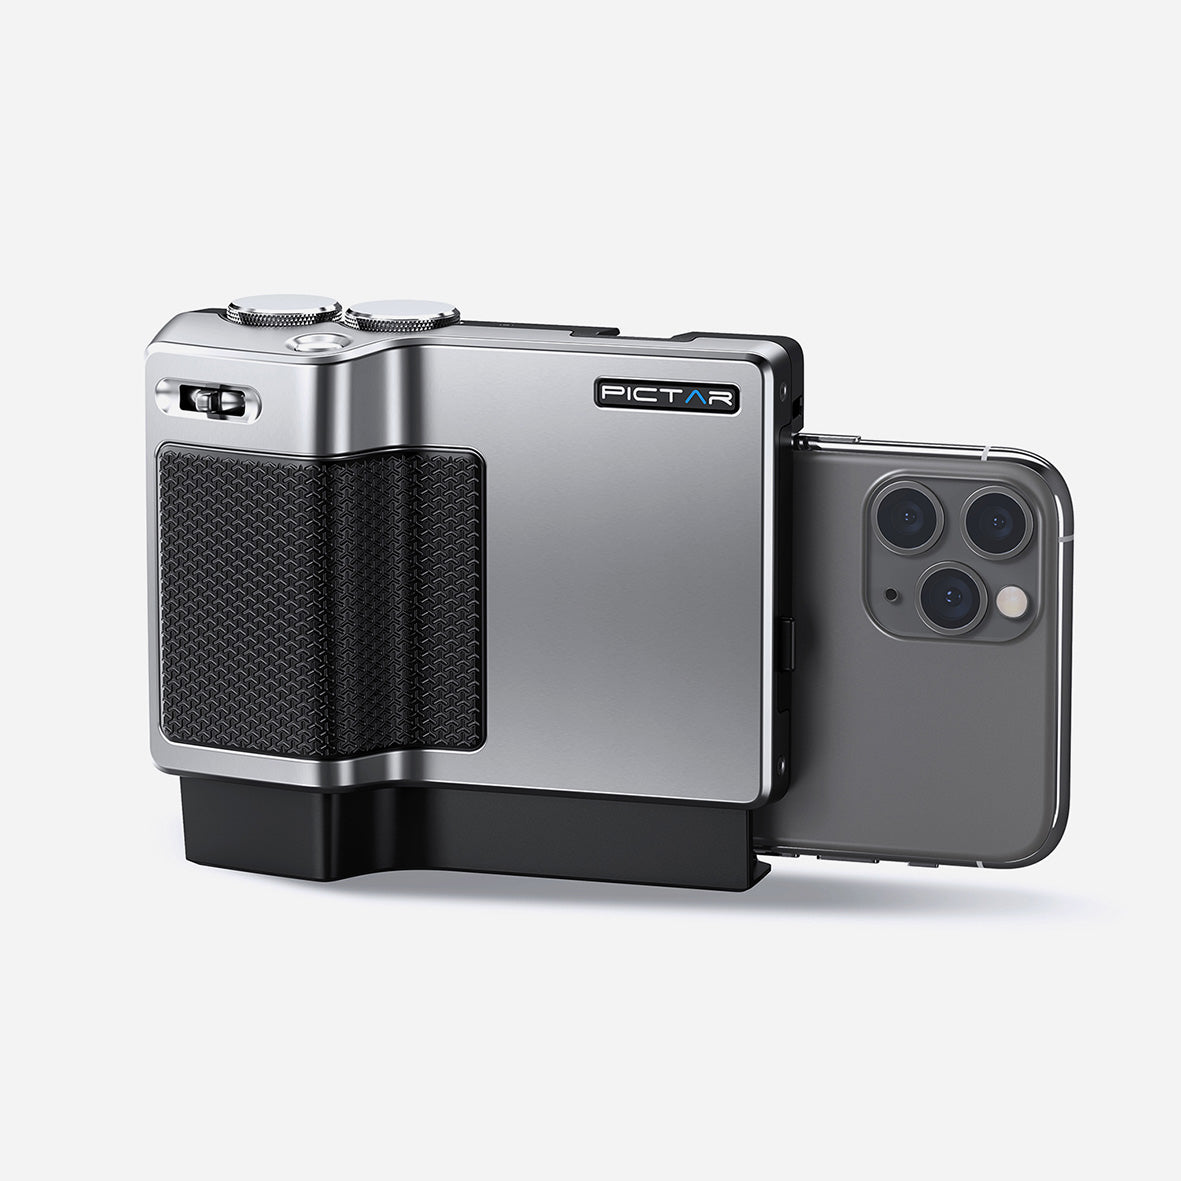 Pictar Pro / Pictar Pro Charge Smartphone Camera Grip